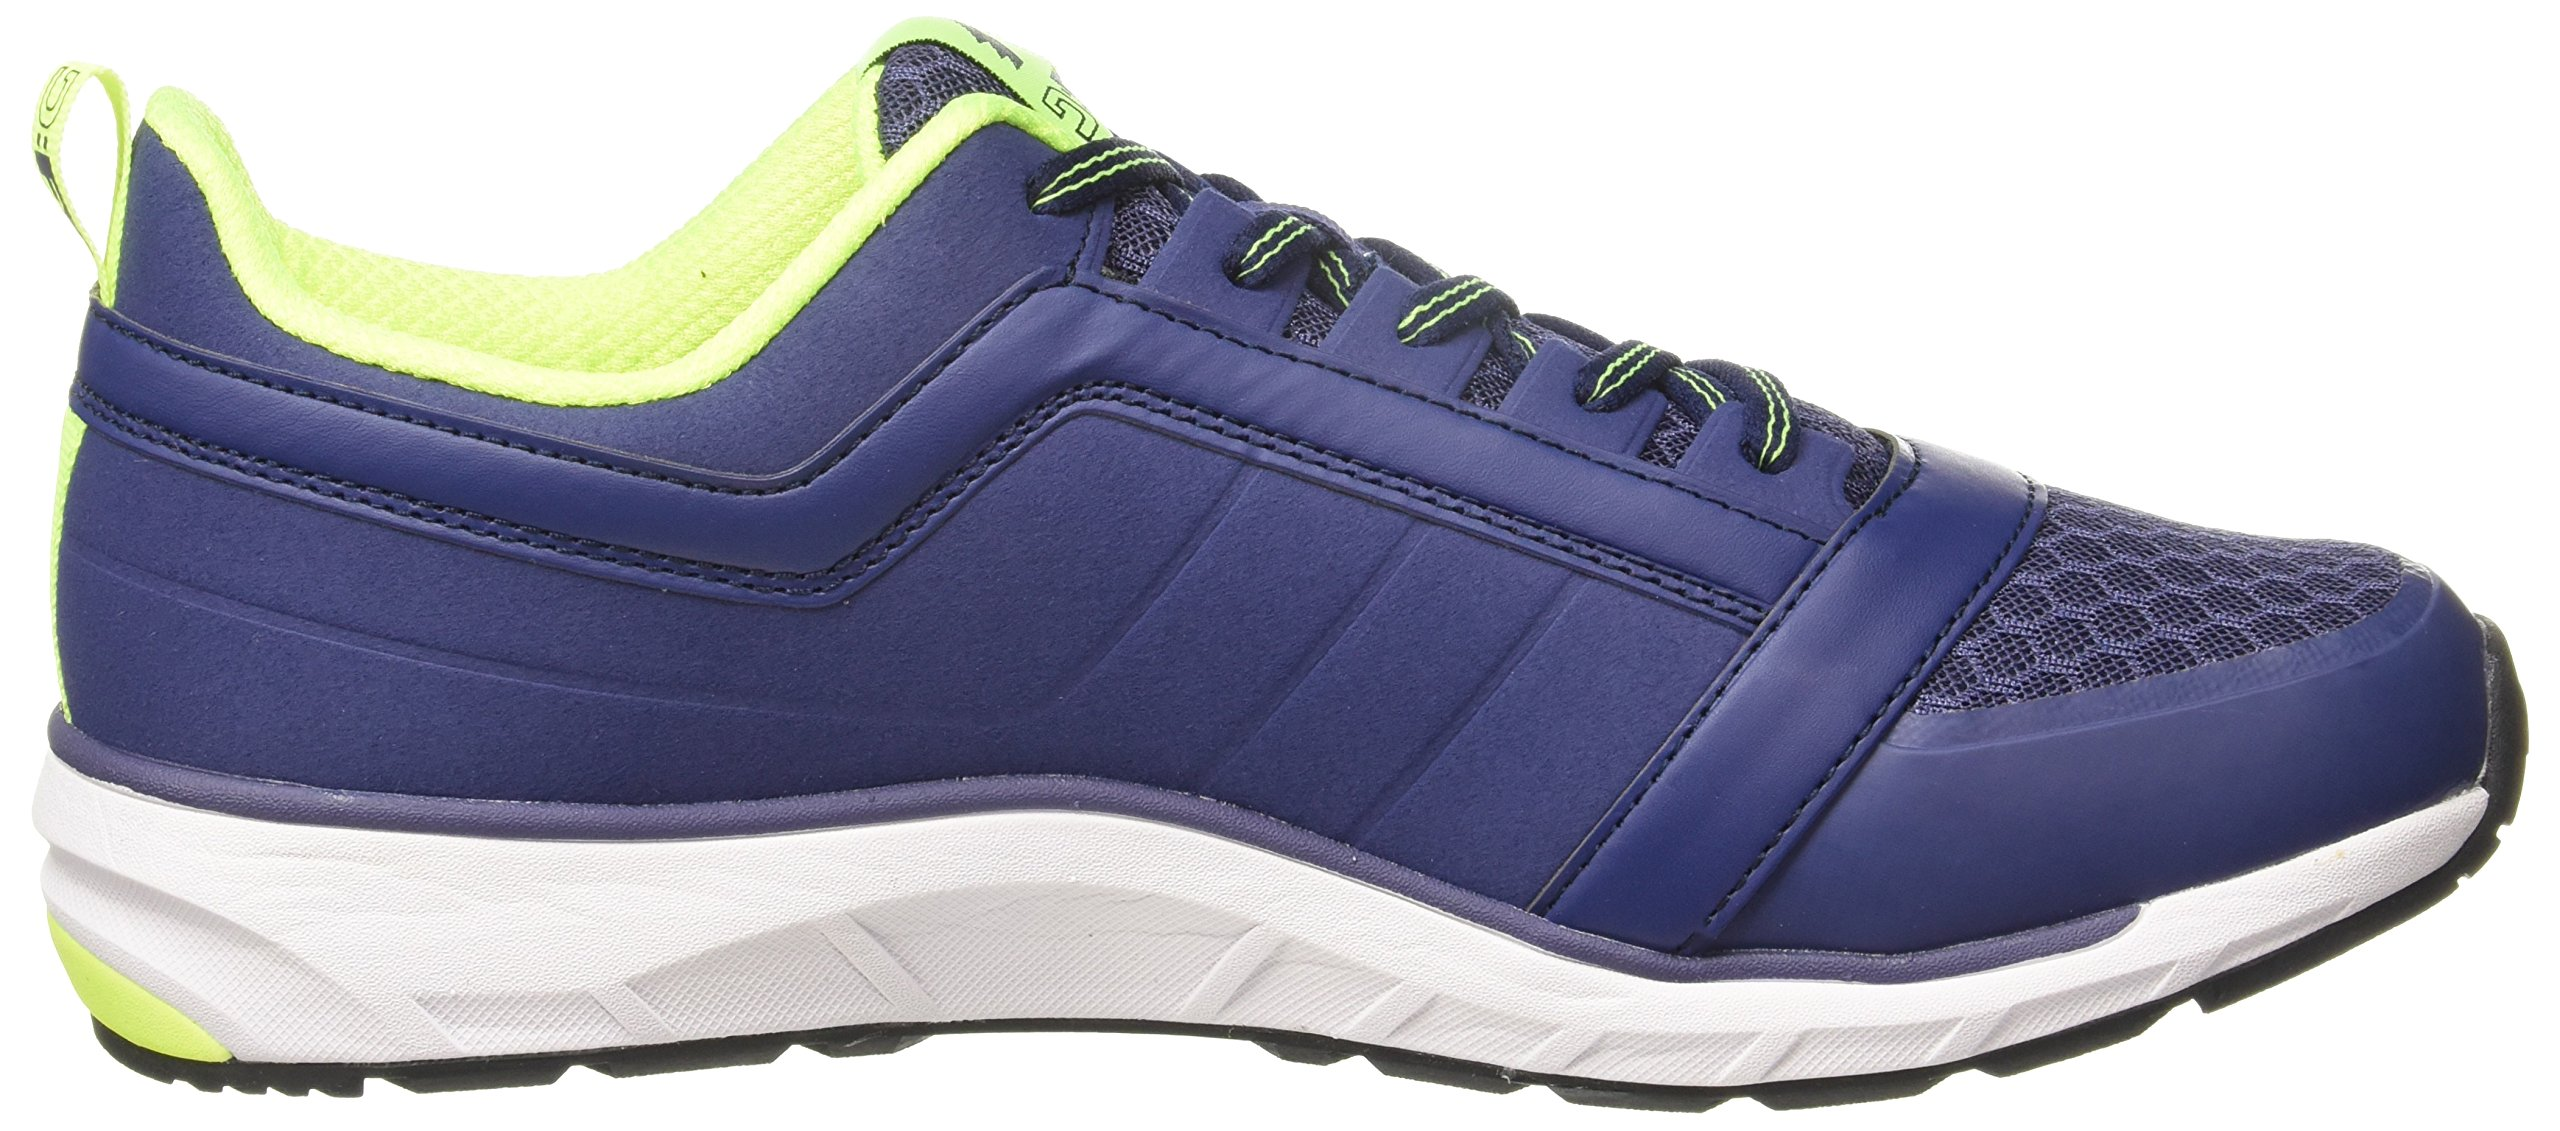 DFY Men's Muscle Running Shoes- Buy